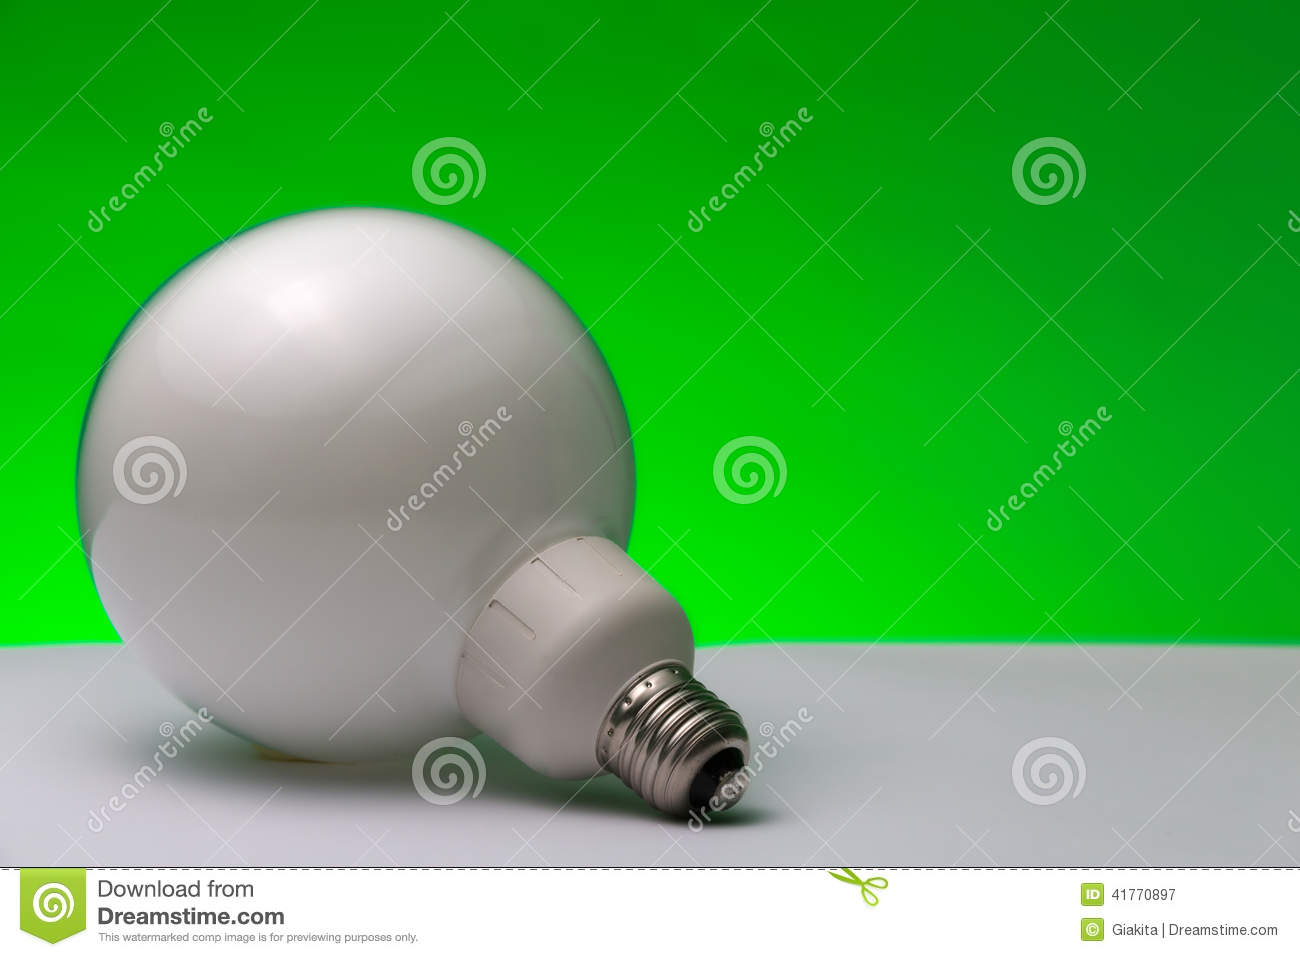 Fluorescent Lamp: Green Energy Stock Image - Image of energy, lamp